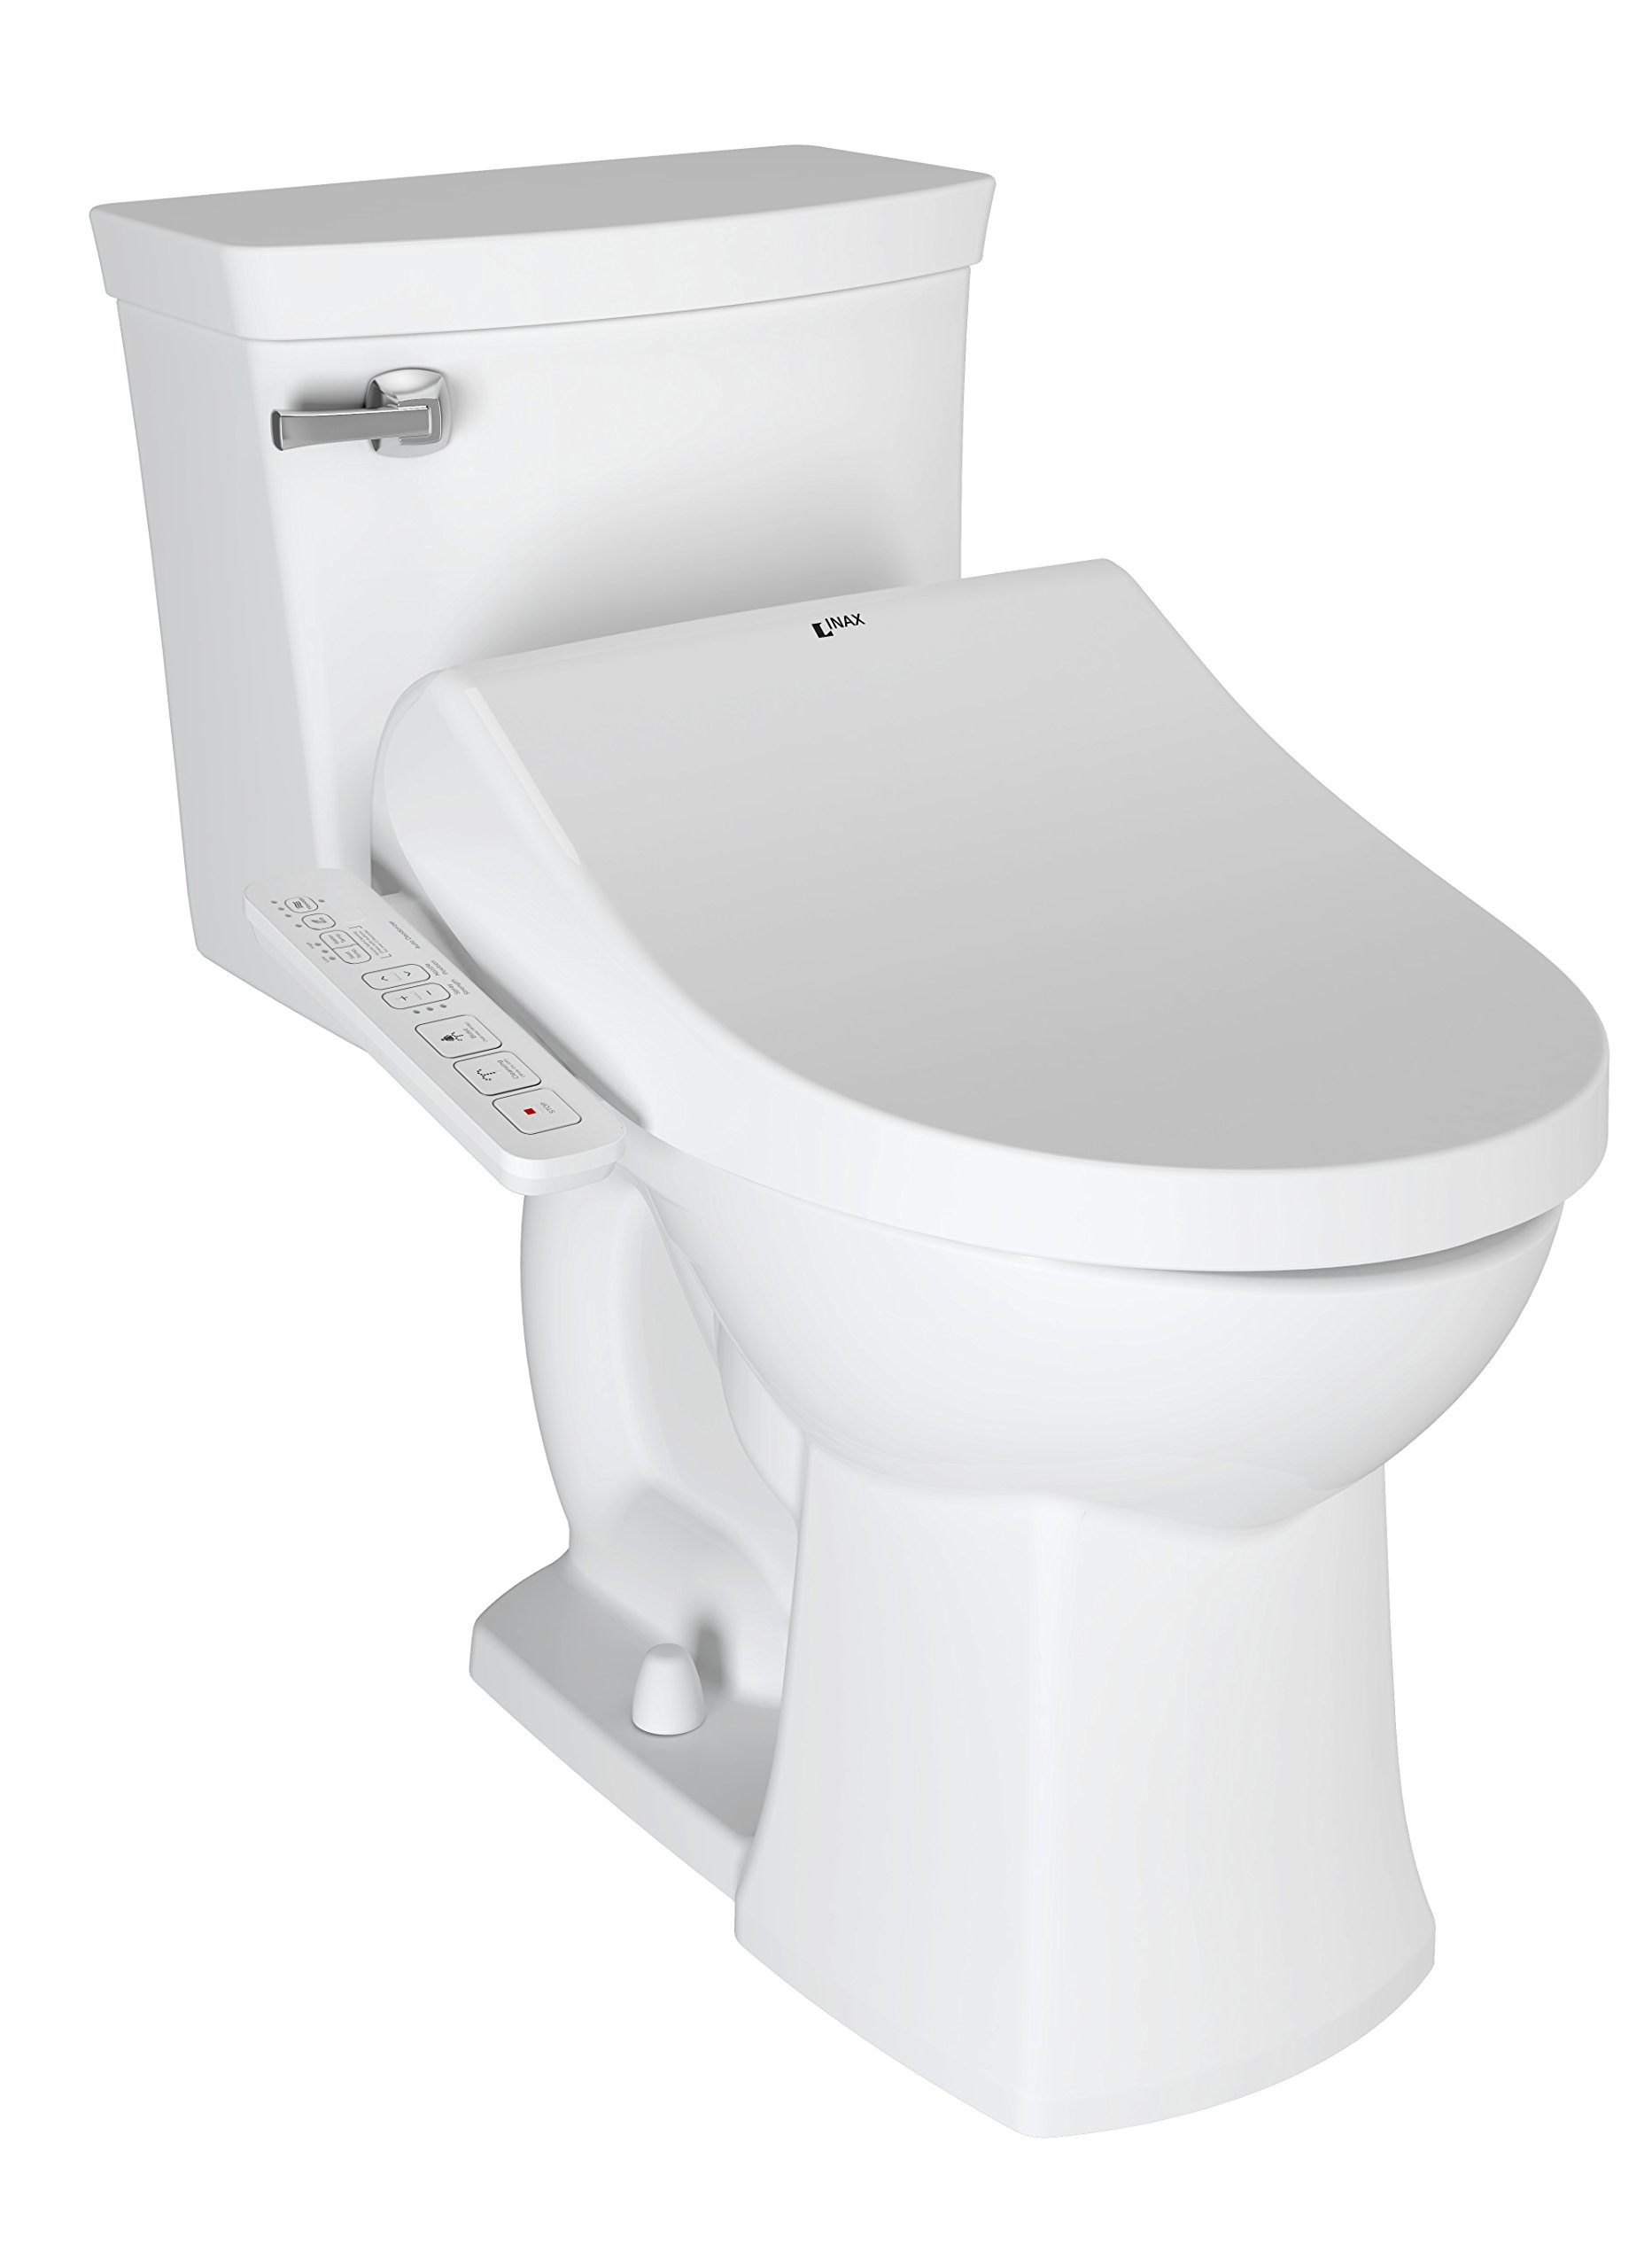 INAX 8013A70GPC-415 Heated Shower Toilet Bidet Seat with Side Panel Dual Nozzle Antibacterial, Deodorizer, Canvas White by INAX (Image #2)